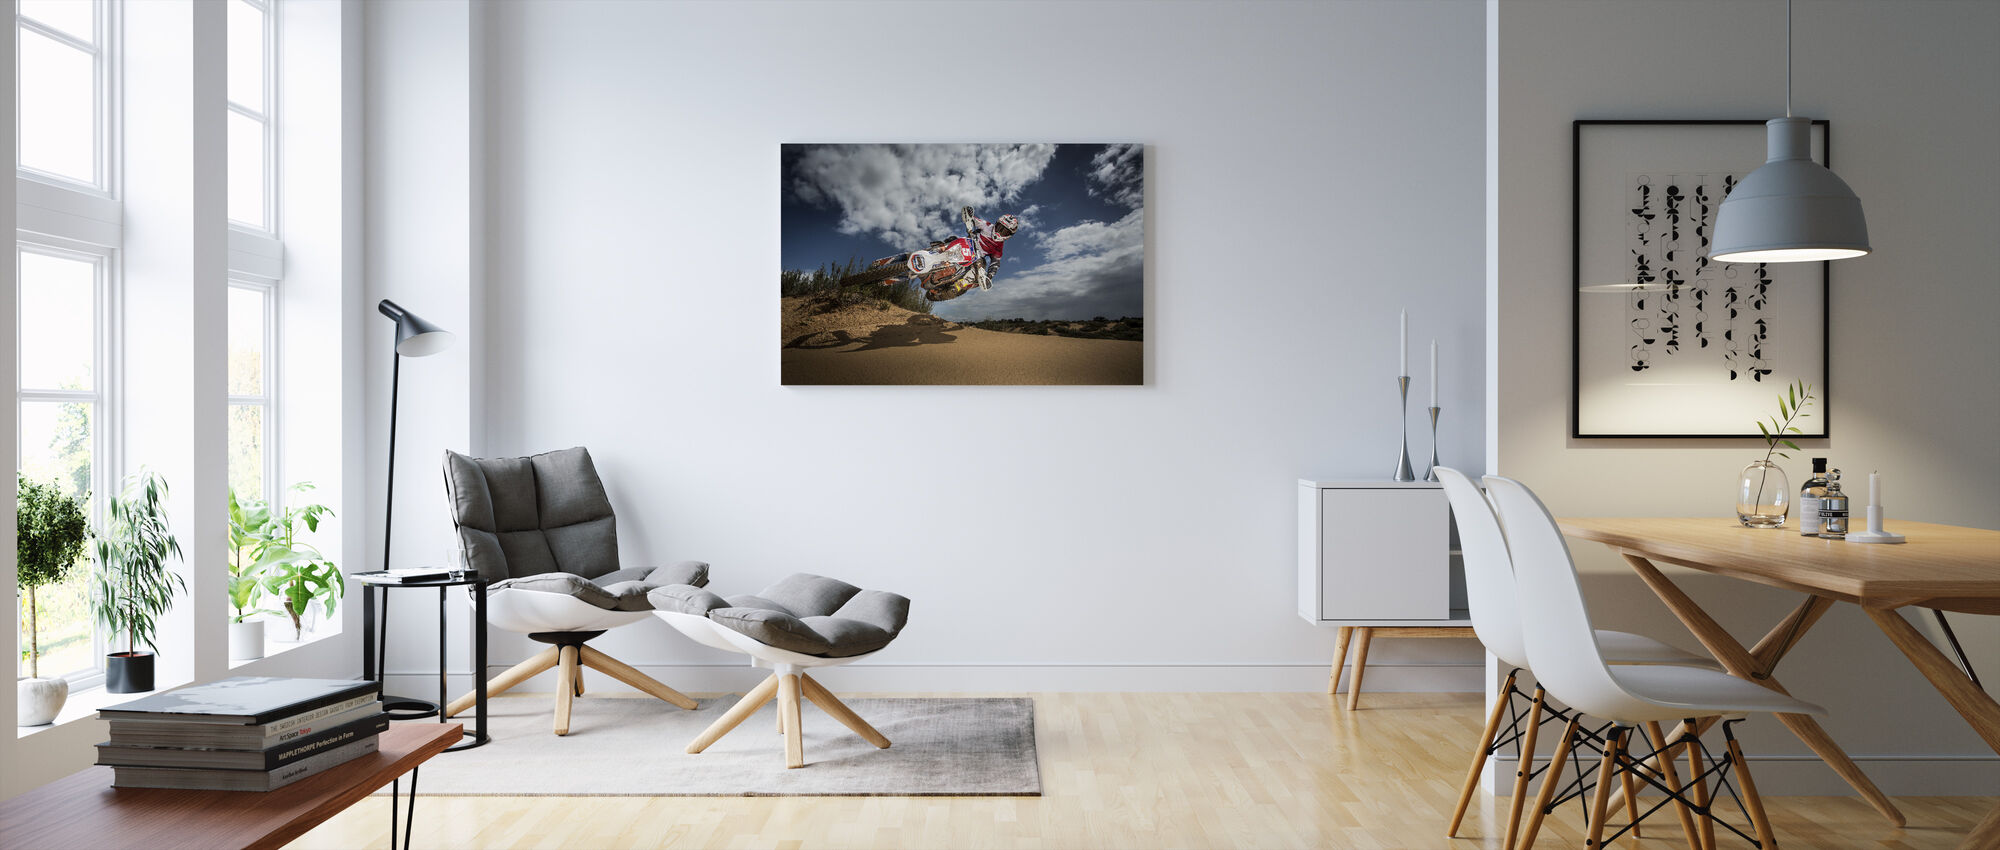 Knocked up - Canvas print - Living Room